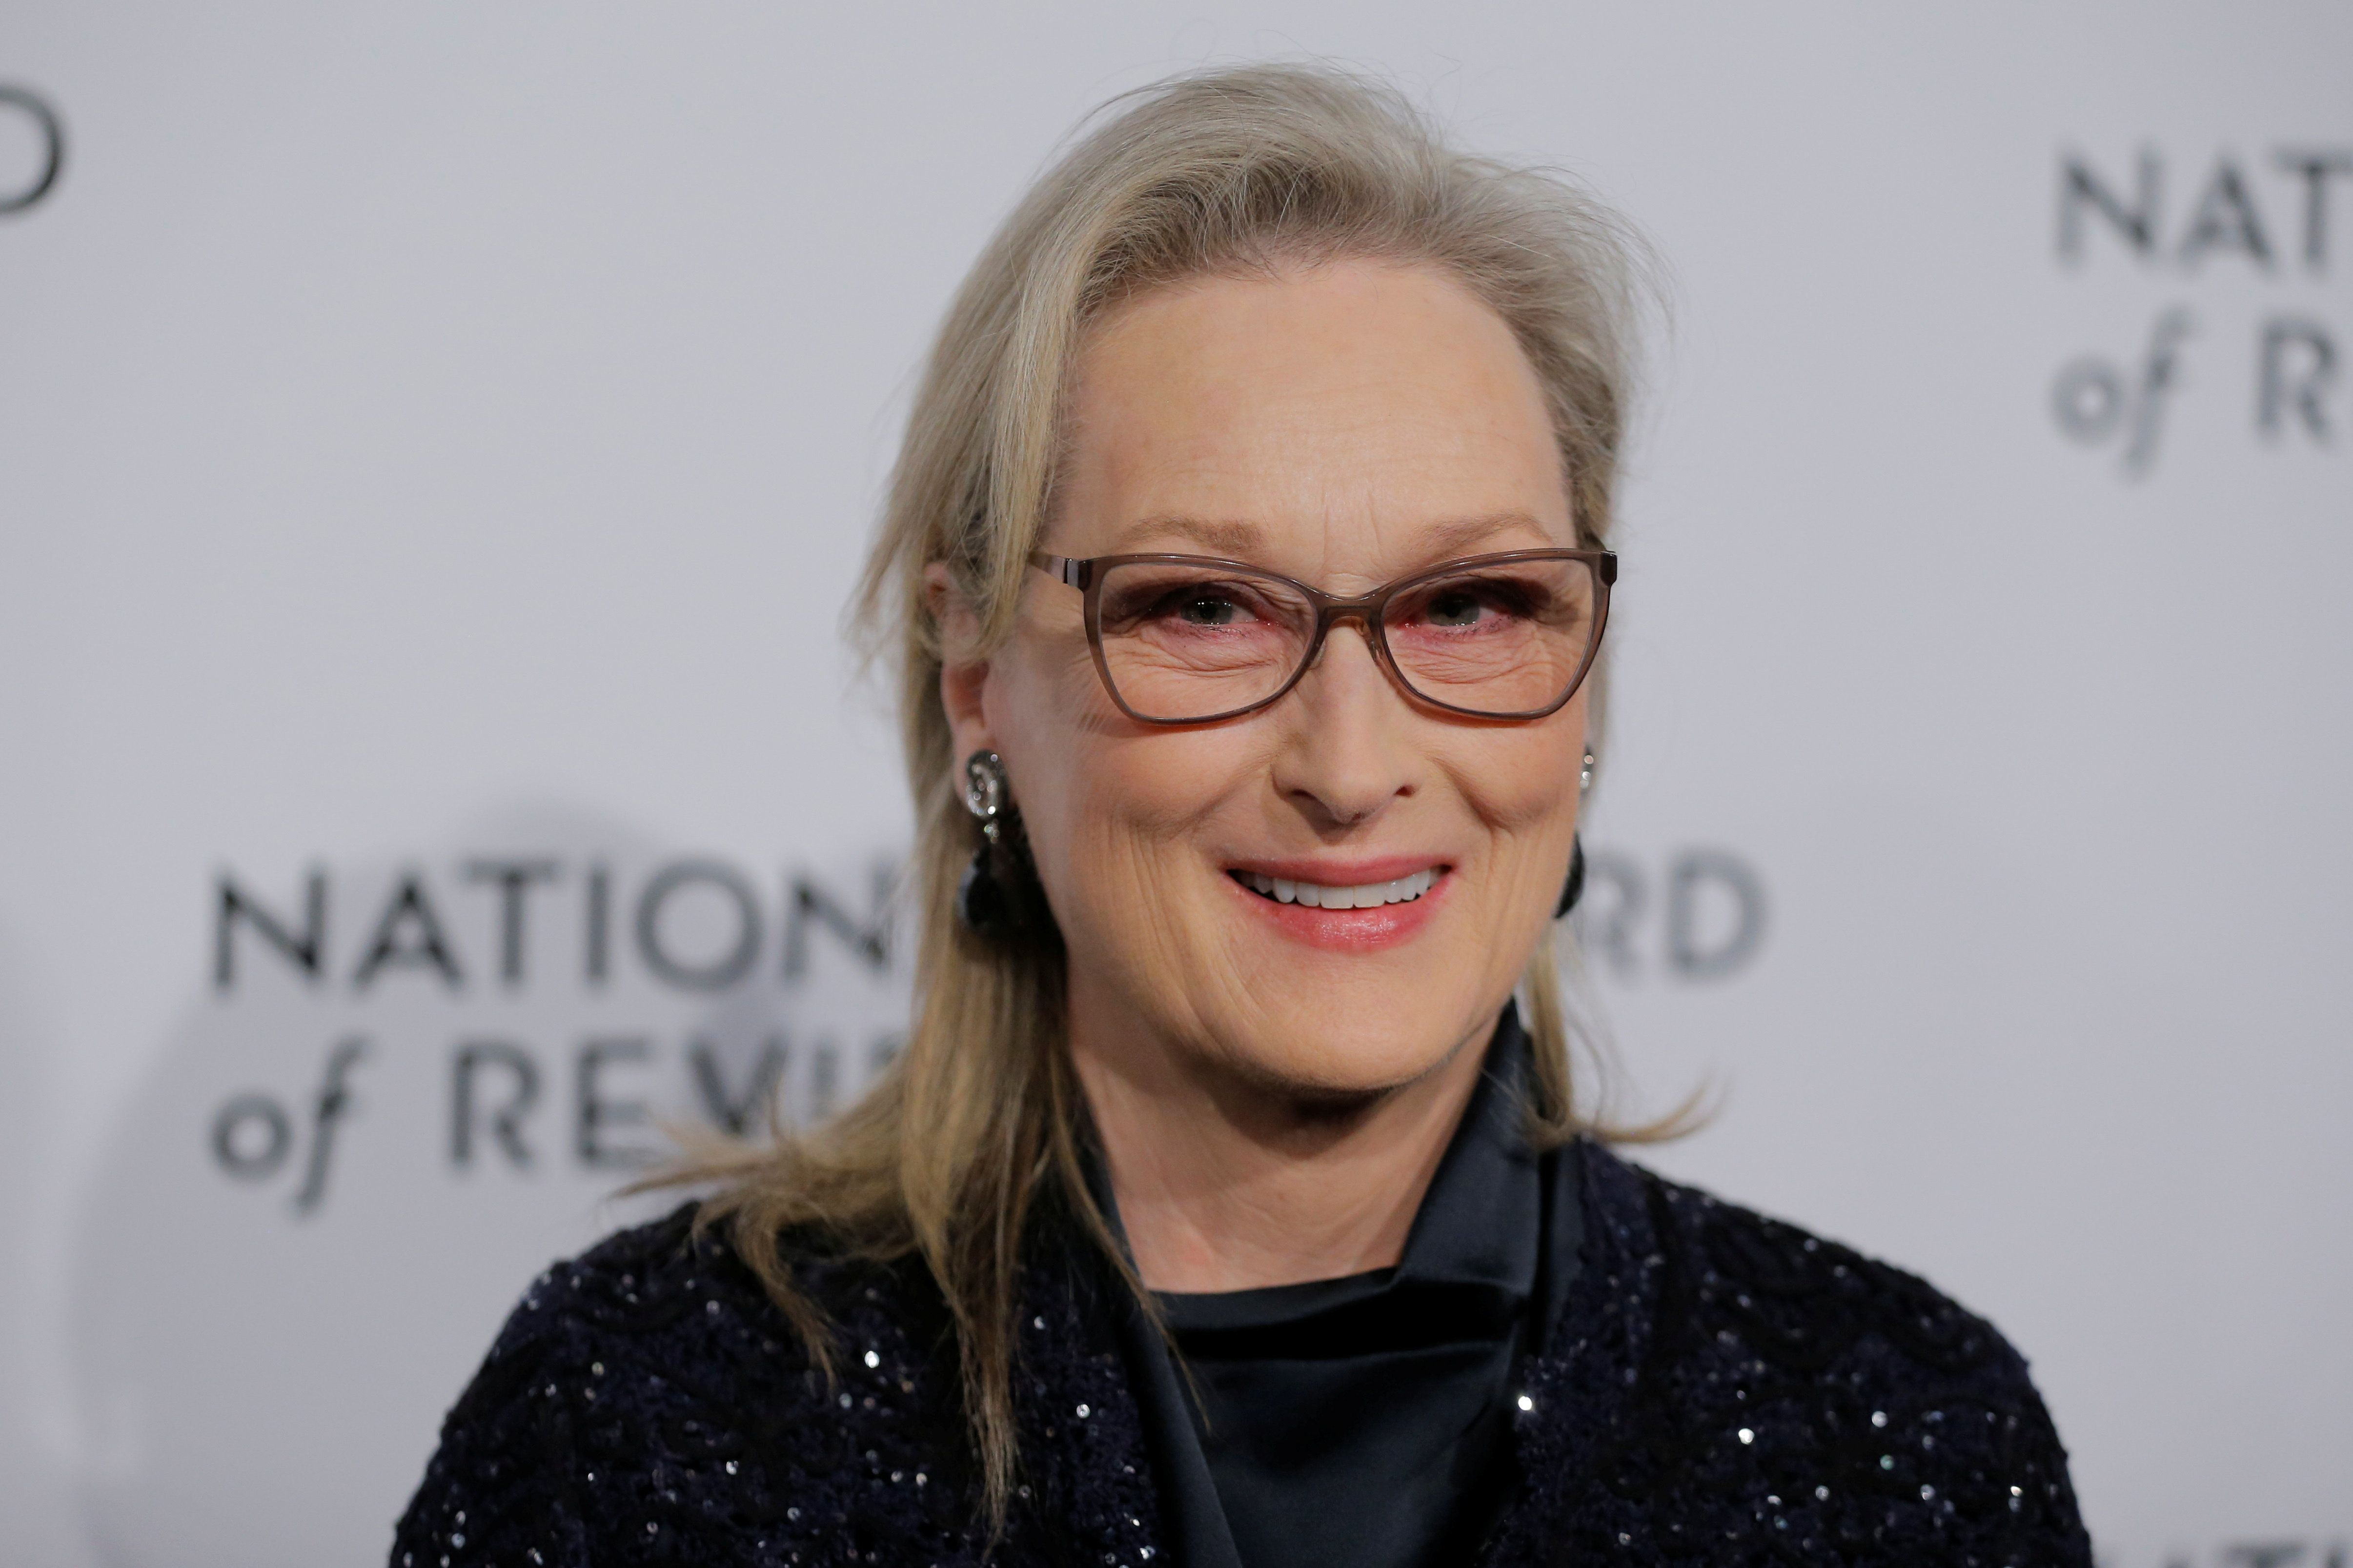 'Big Little Lies': Meryl Streep Joins Season 2 Cast Of HBO Series